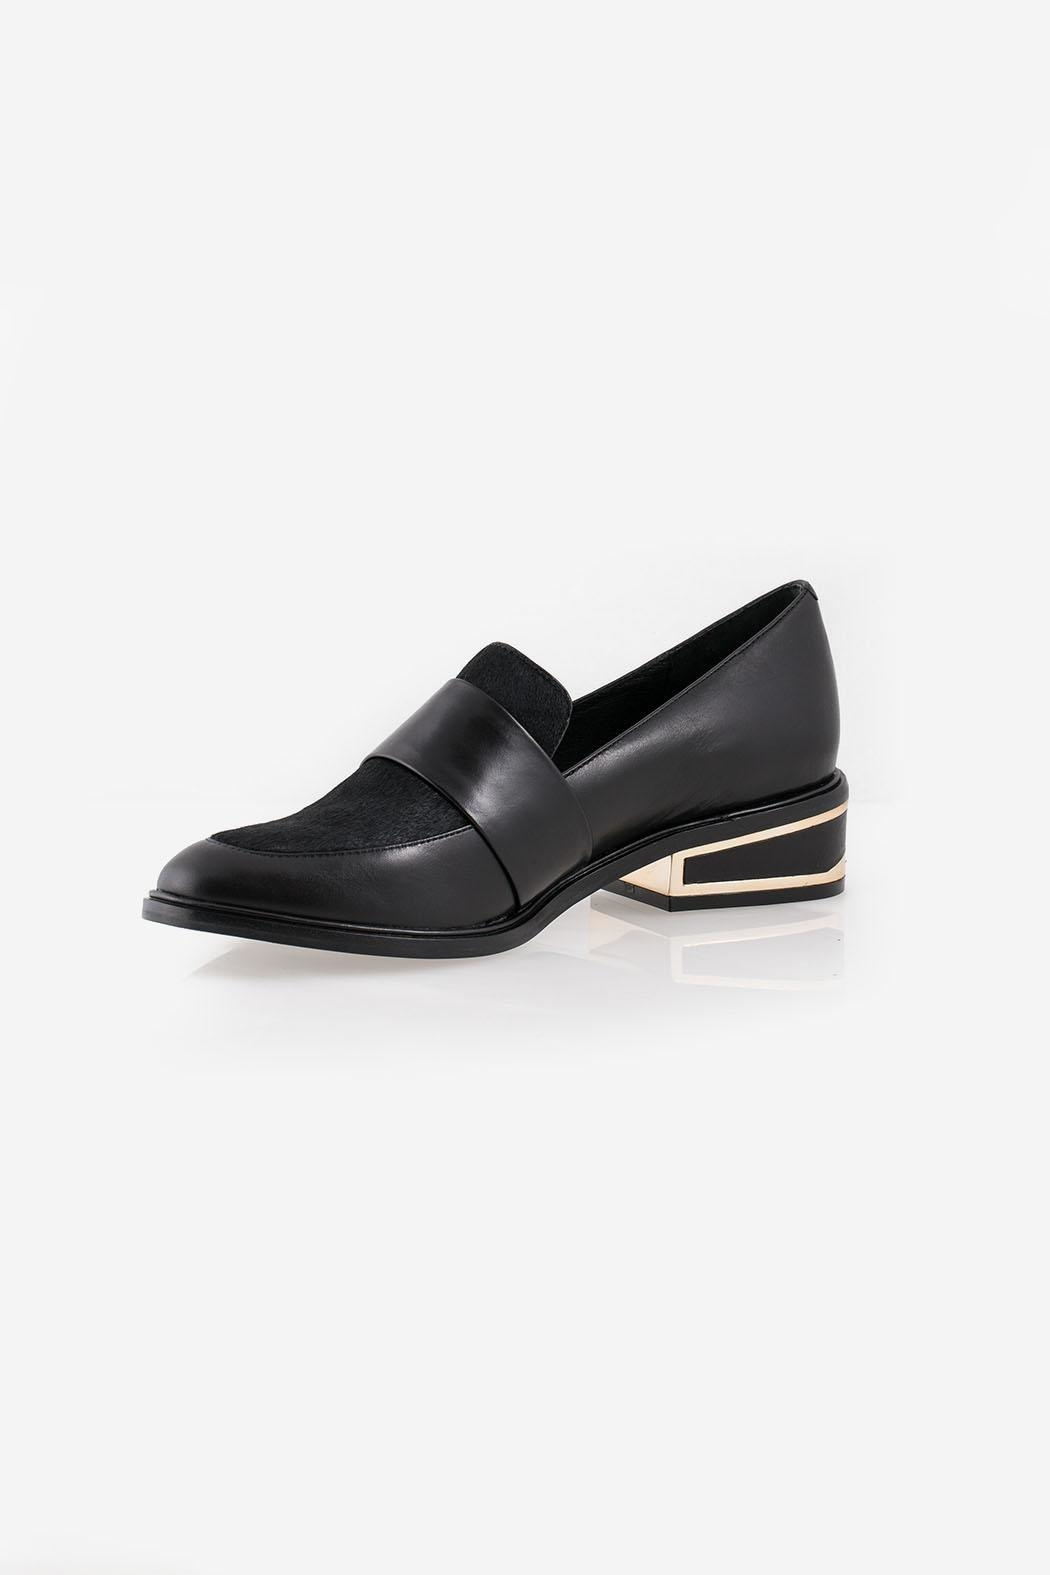 Rachel Zoe Bianca Calf Loafers - Front Cropped Image